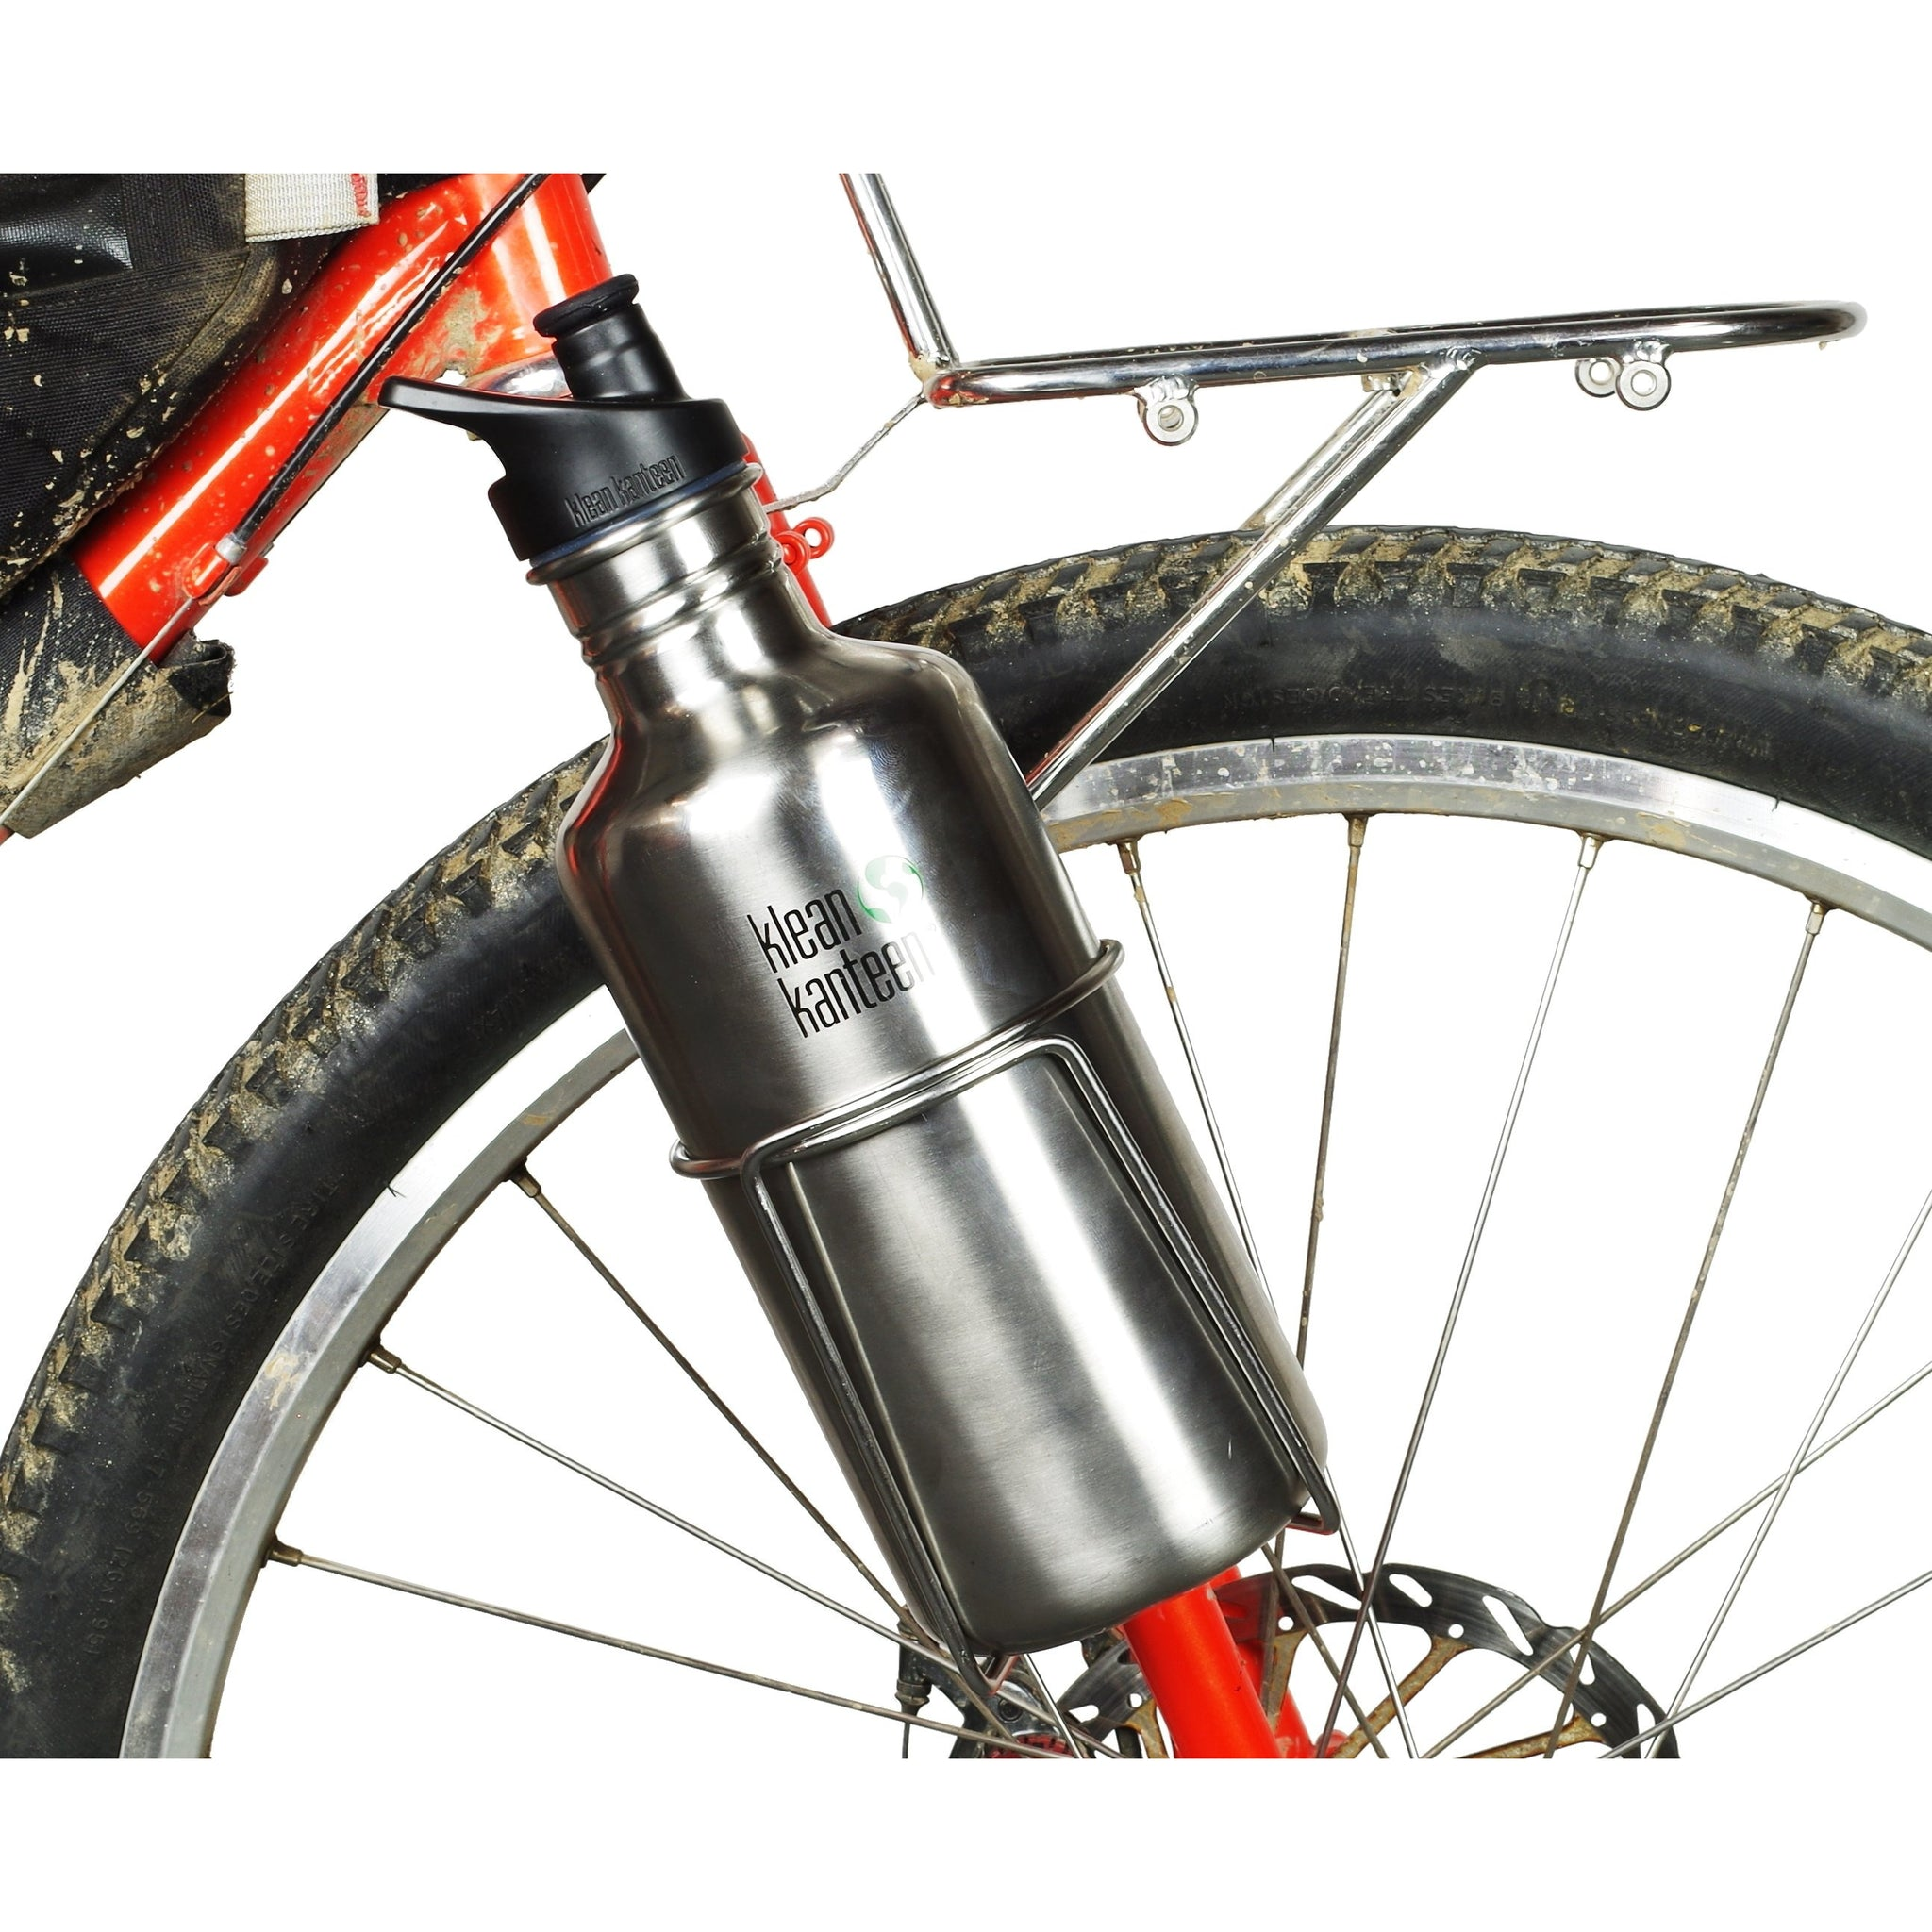 WEIZEU Ultralight Aluminum Alloy Bicycle Bottle Flask Holder MTB Mountain Road Bike Cup Rack Water Bottle Cage Cycling Part Accessories